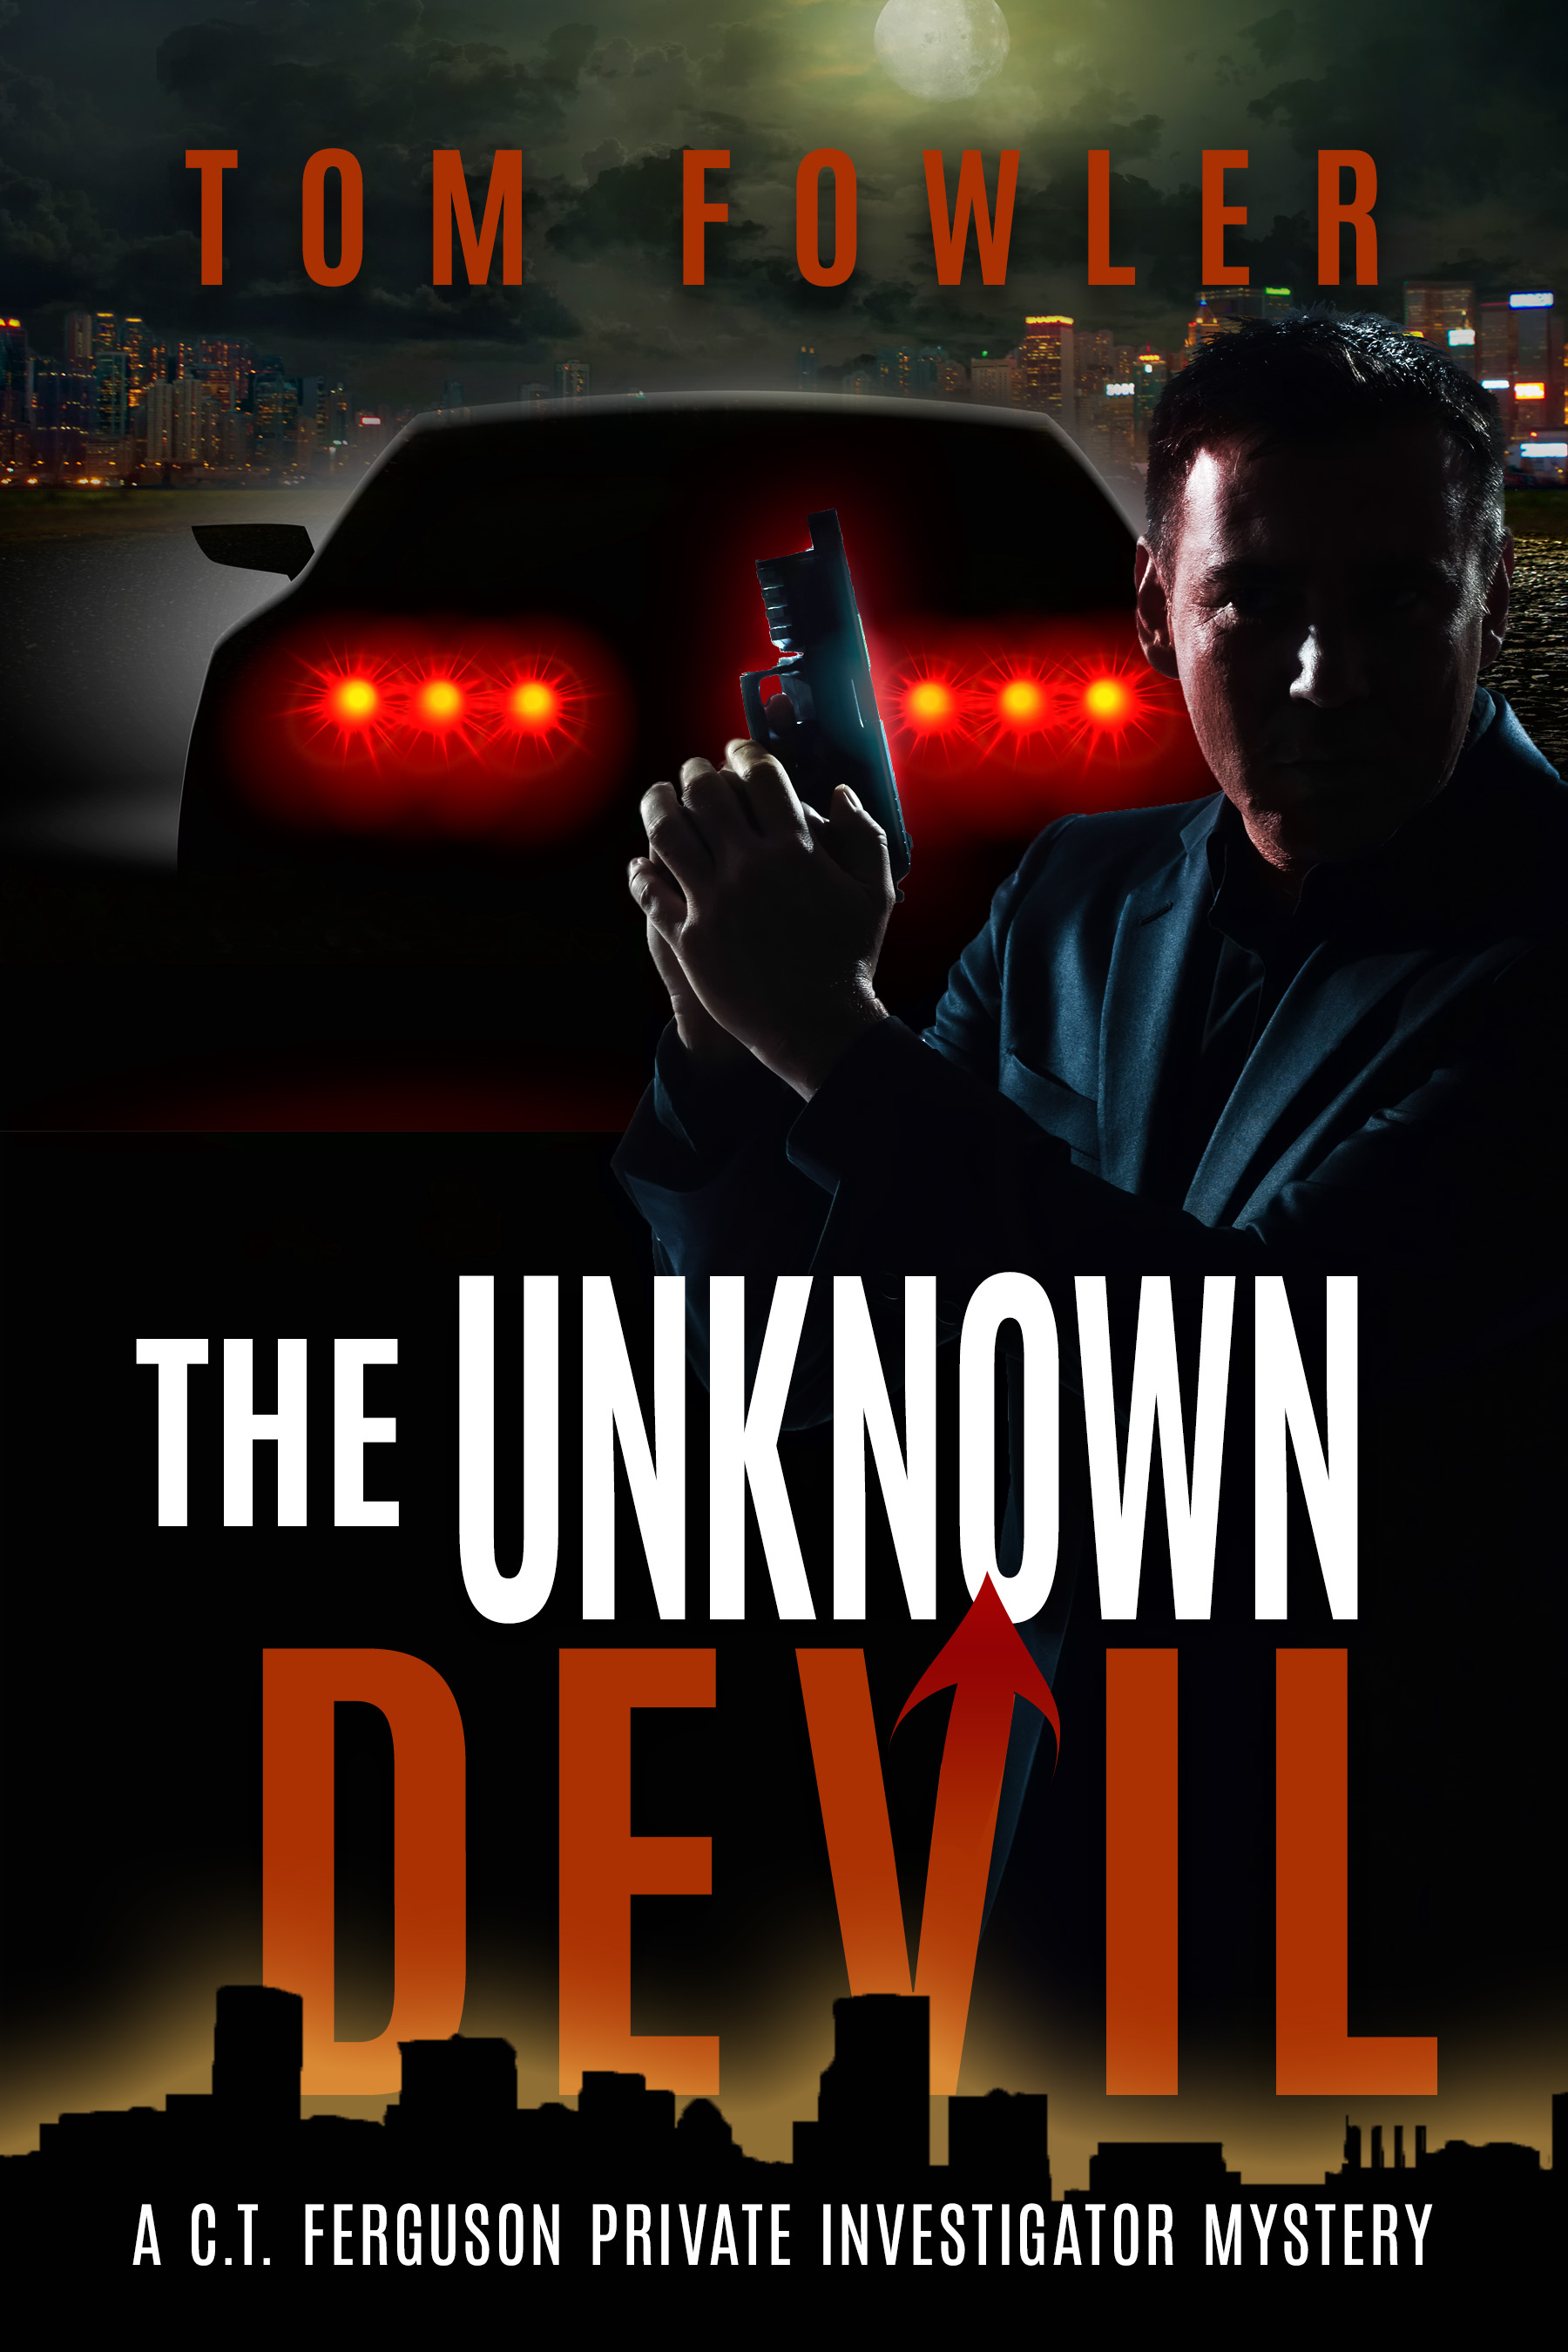 The Unknown Devil